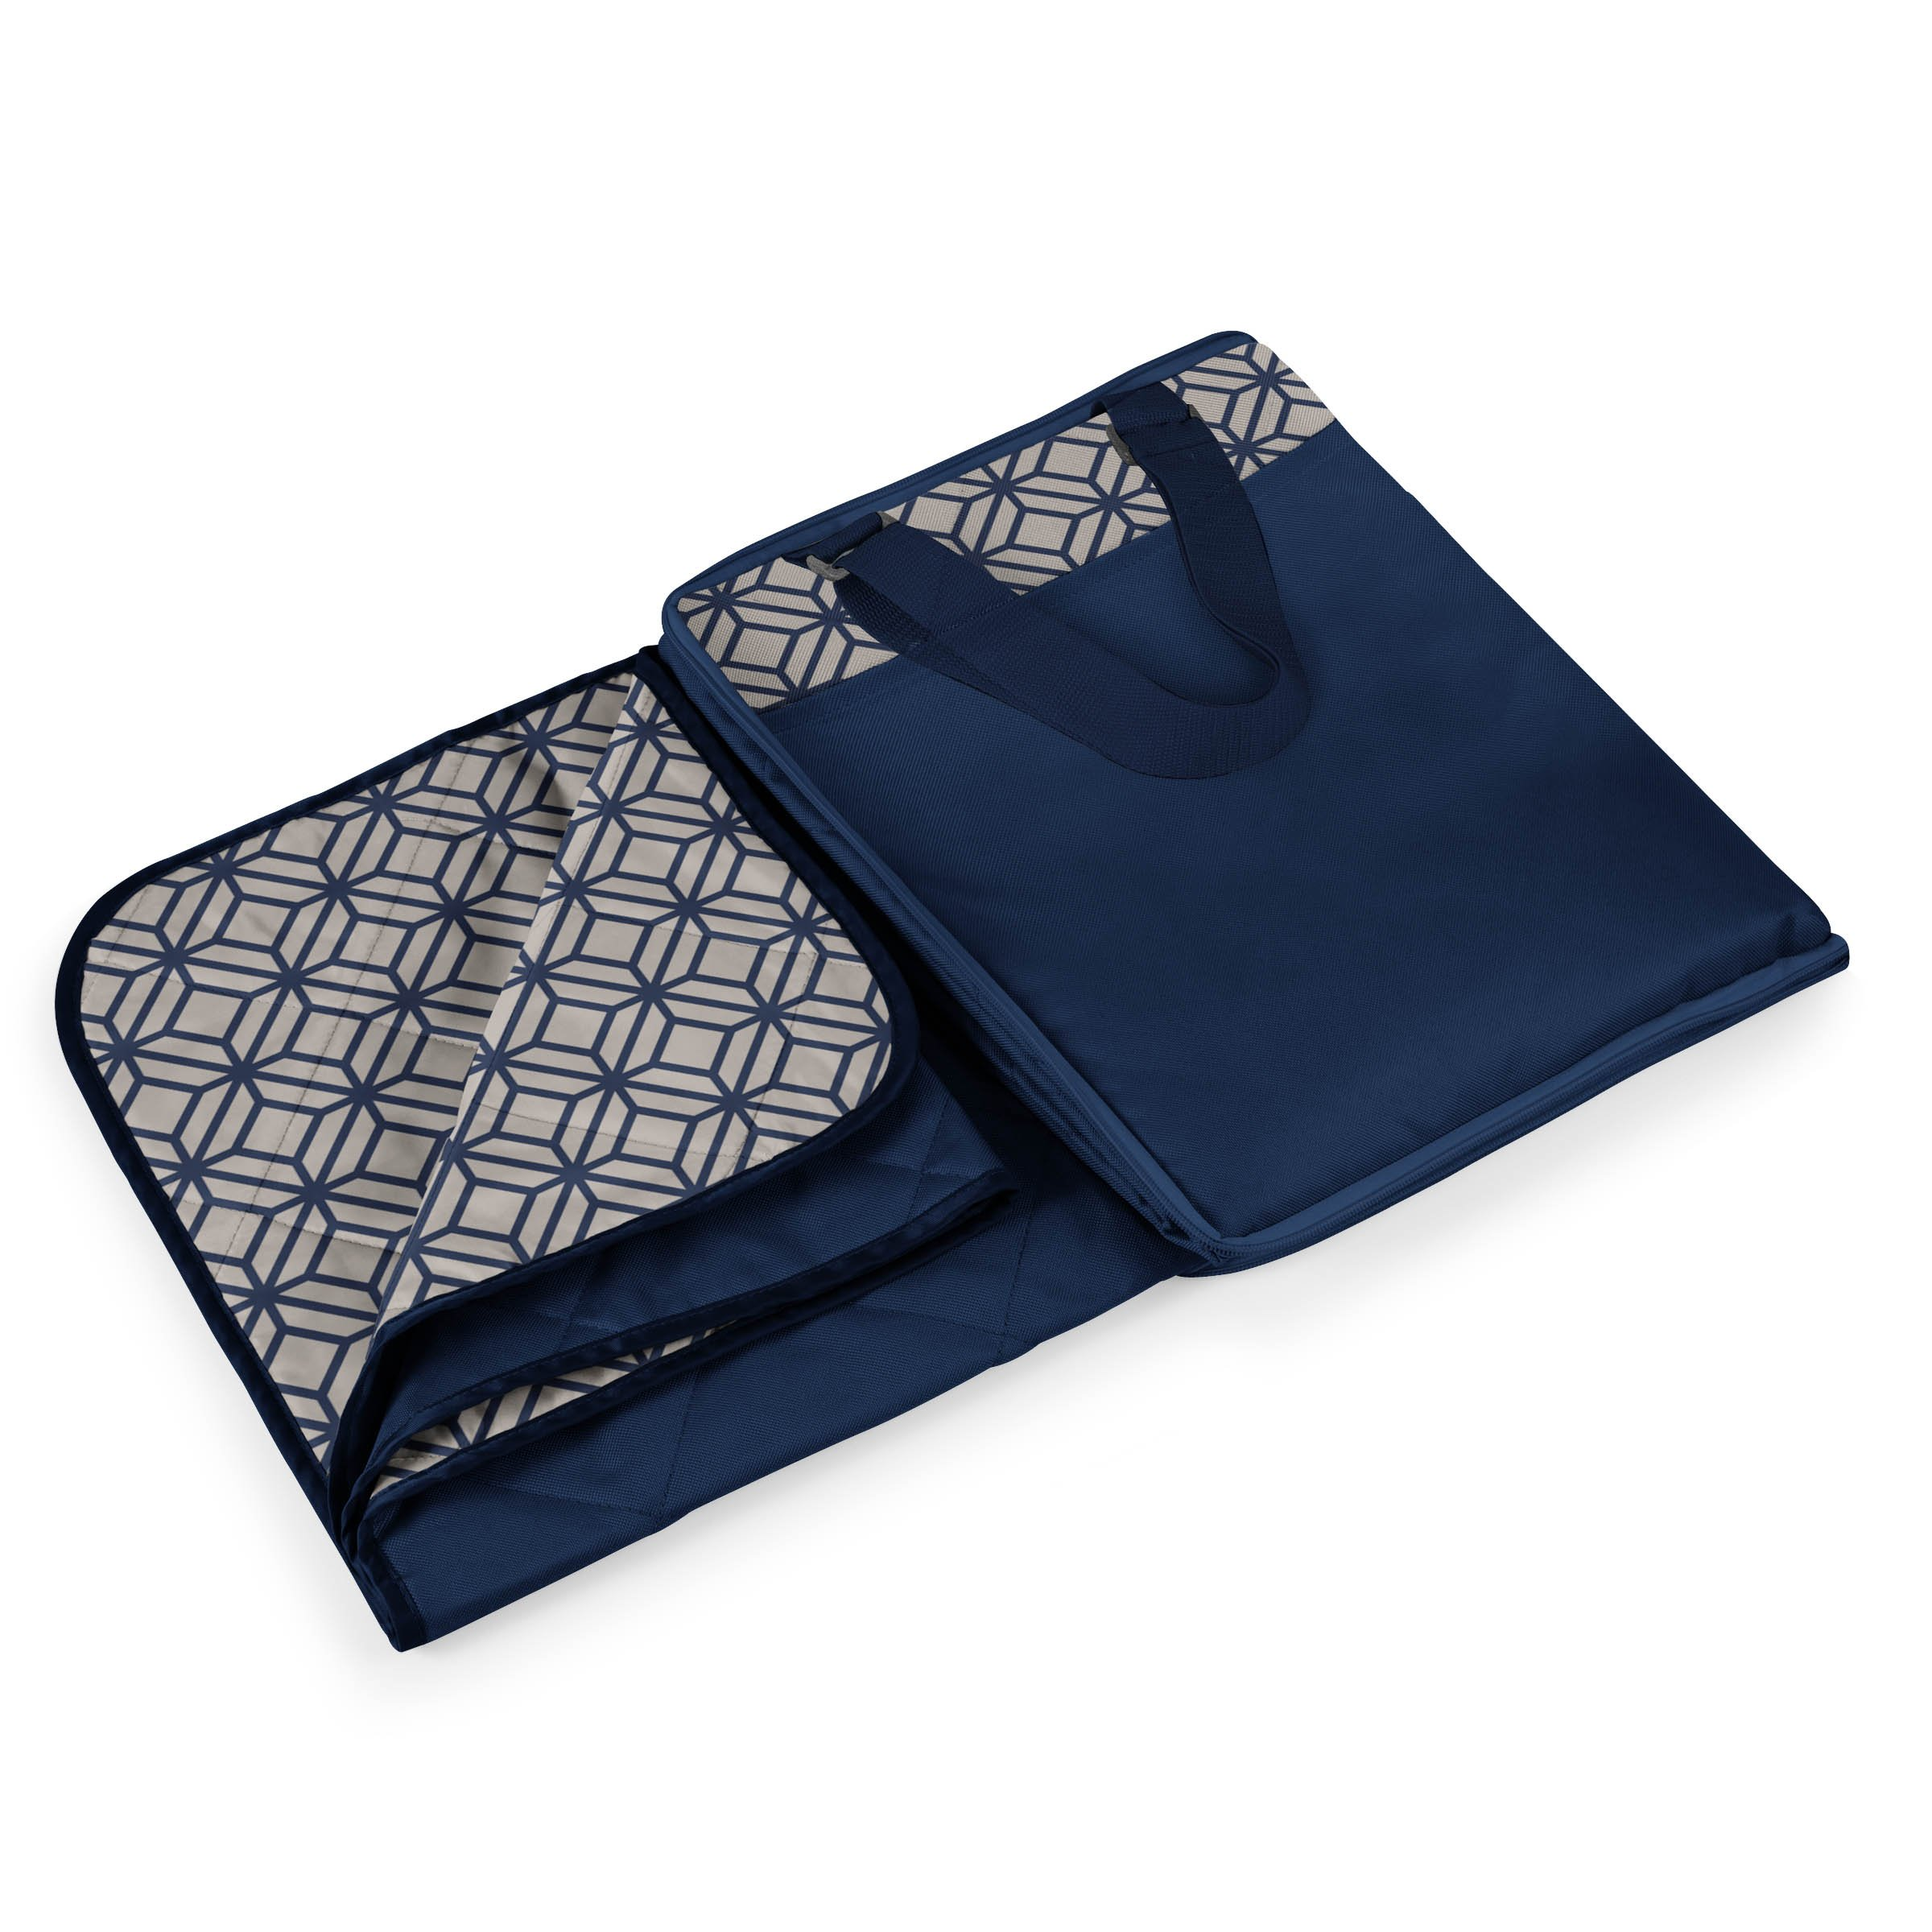 ONIVA - a Picnic Time Brand Vista Outdoor Picnic Blanket Tote XL, Midnight Blue with Morrocan Print